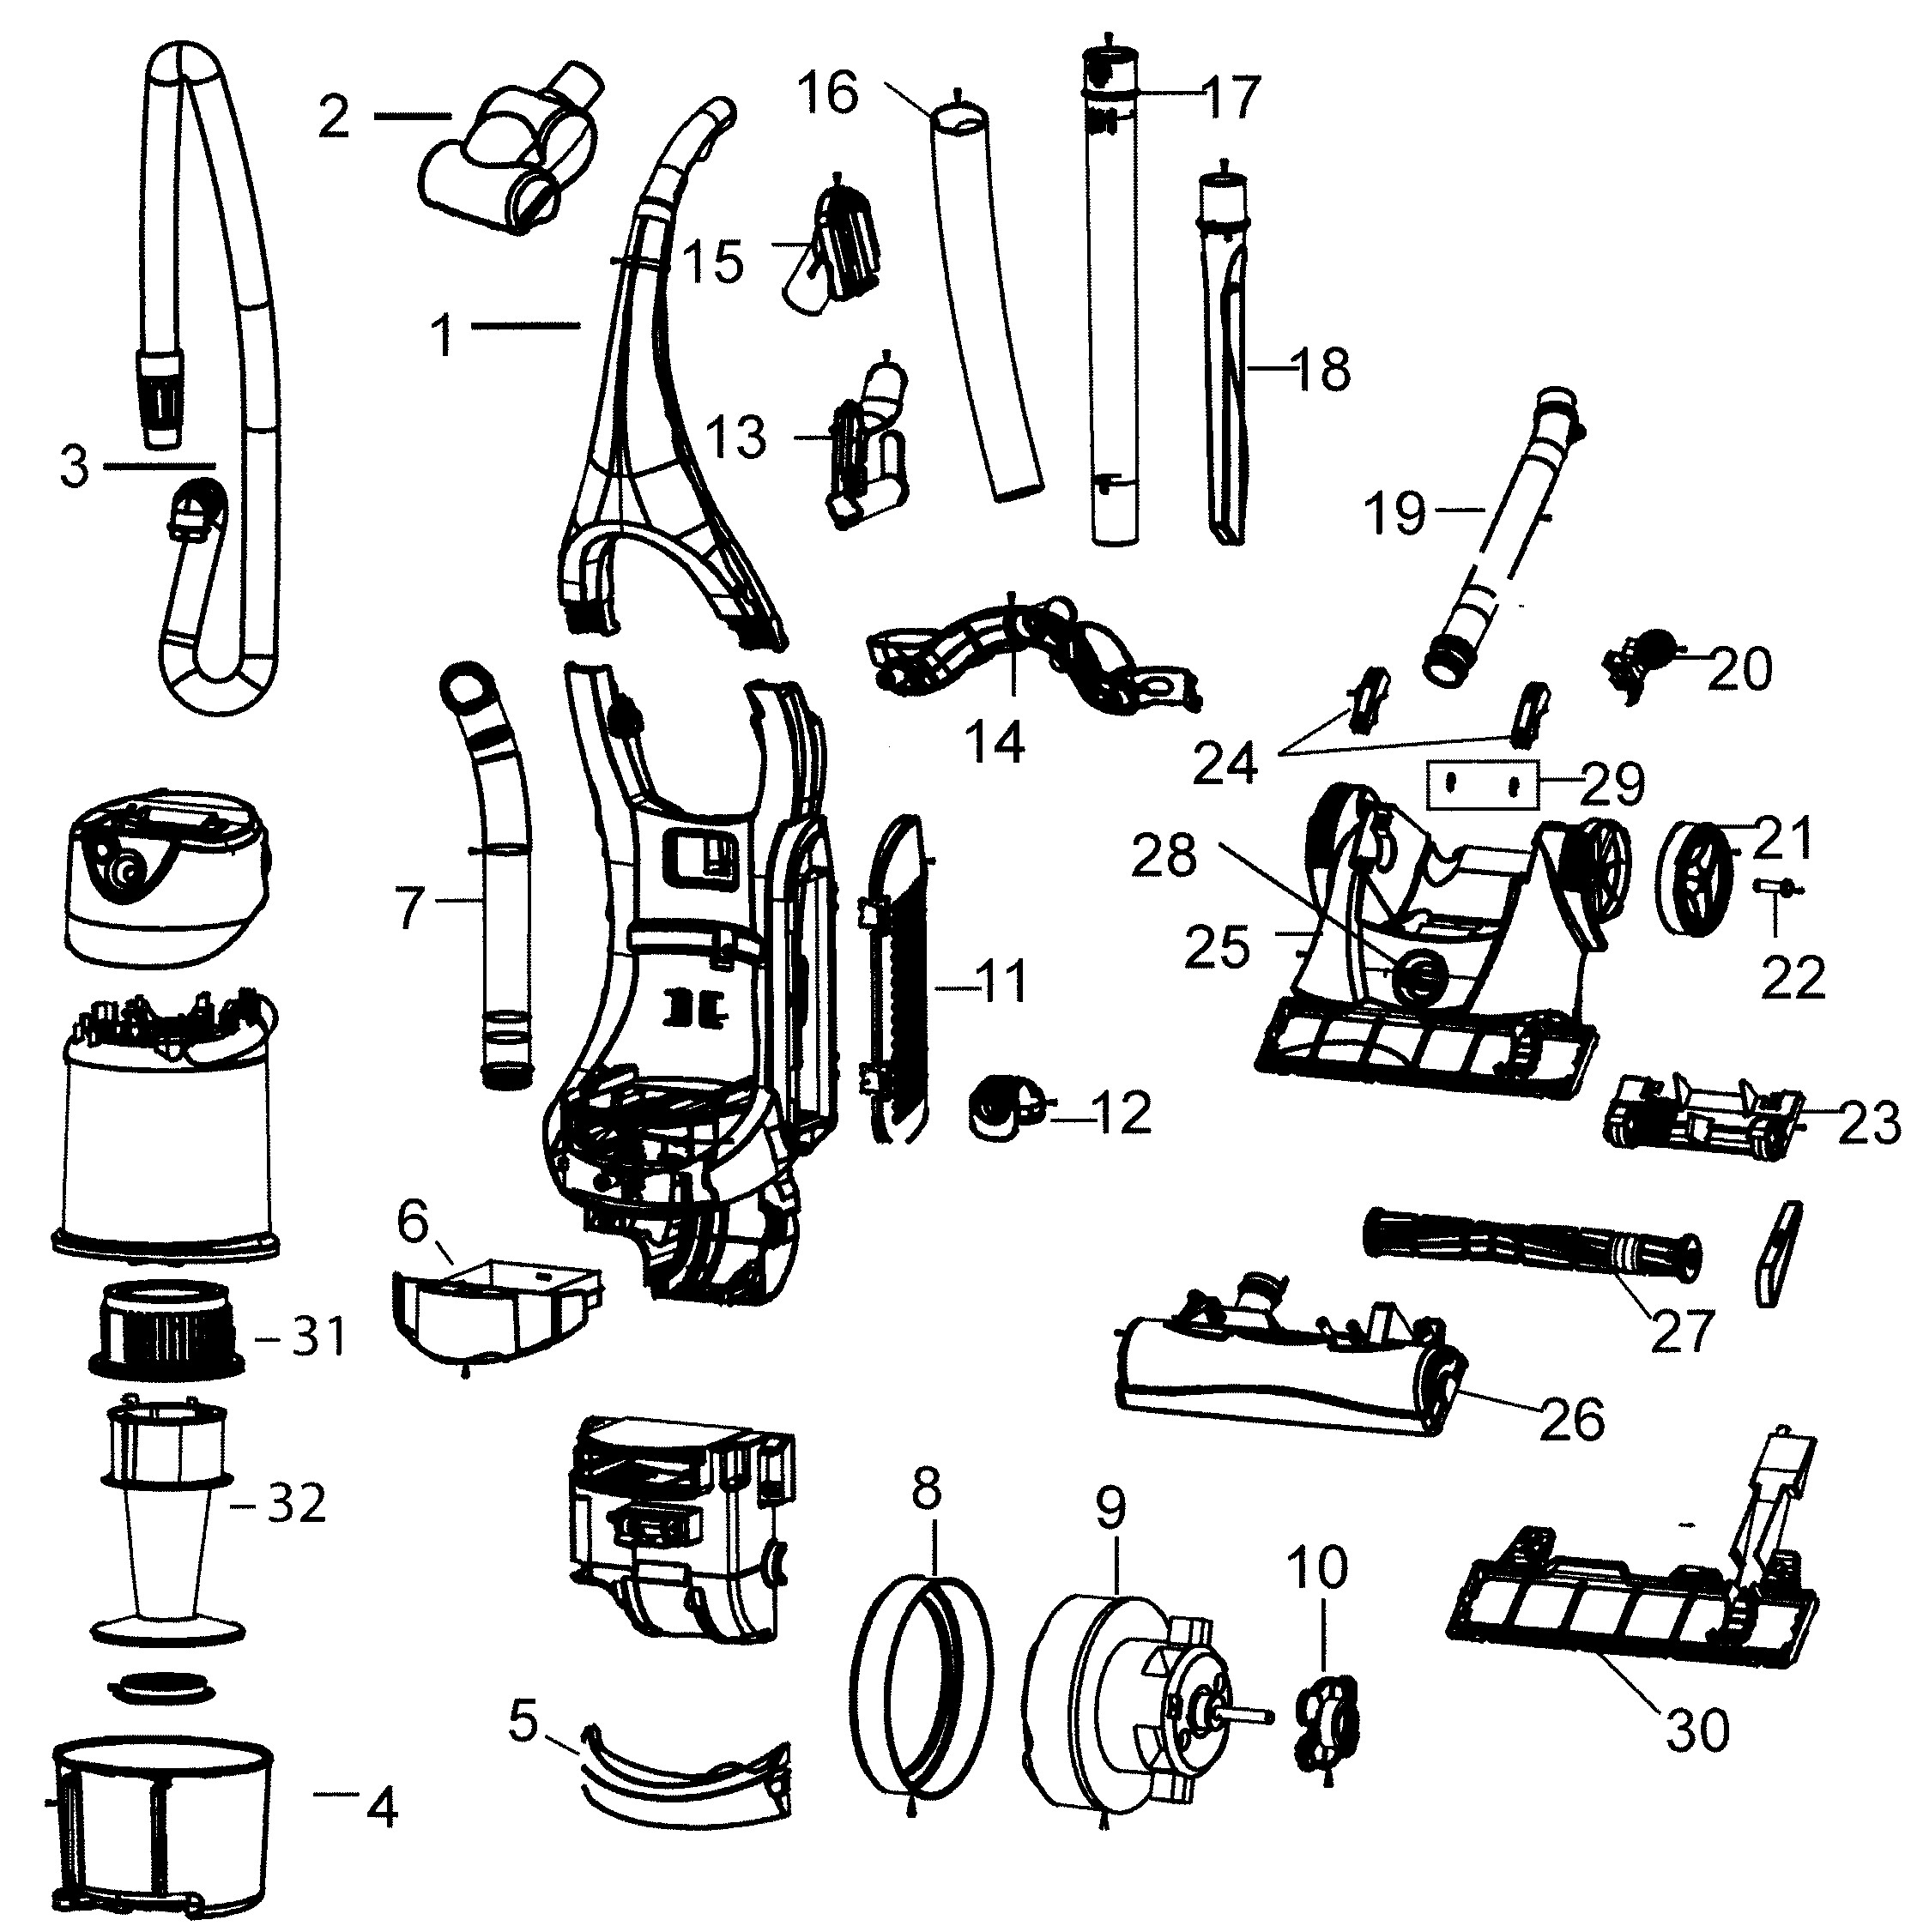 Dyson Dc24 Parts Diagram Vacuum Vacuum Parts Of Dyson Dc24 Parts Diagram